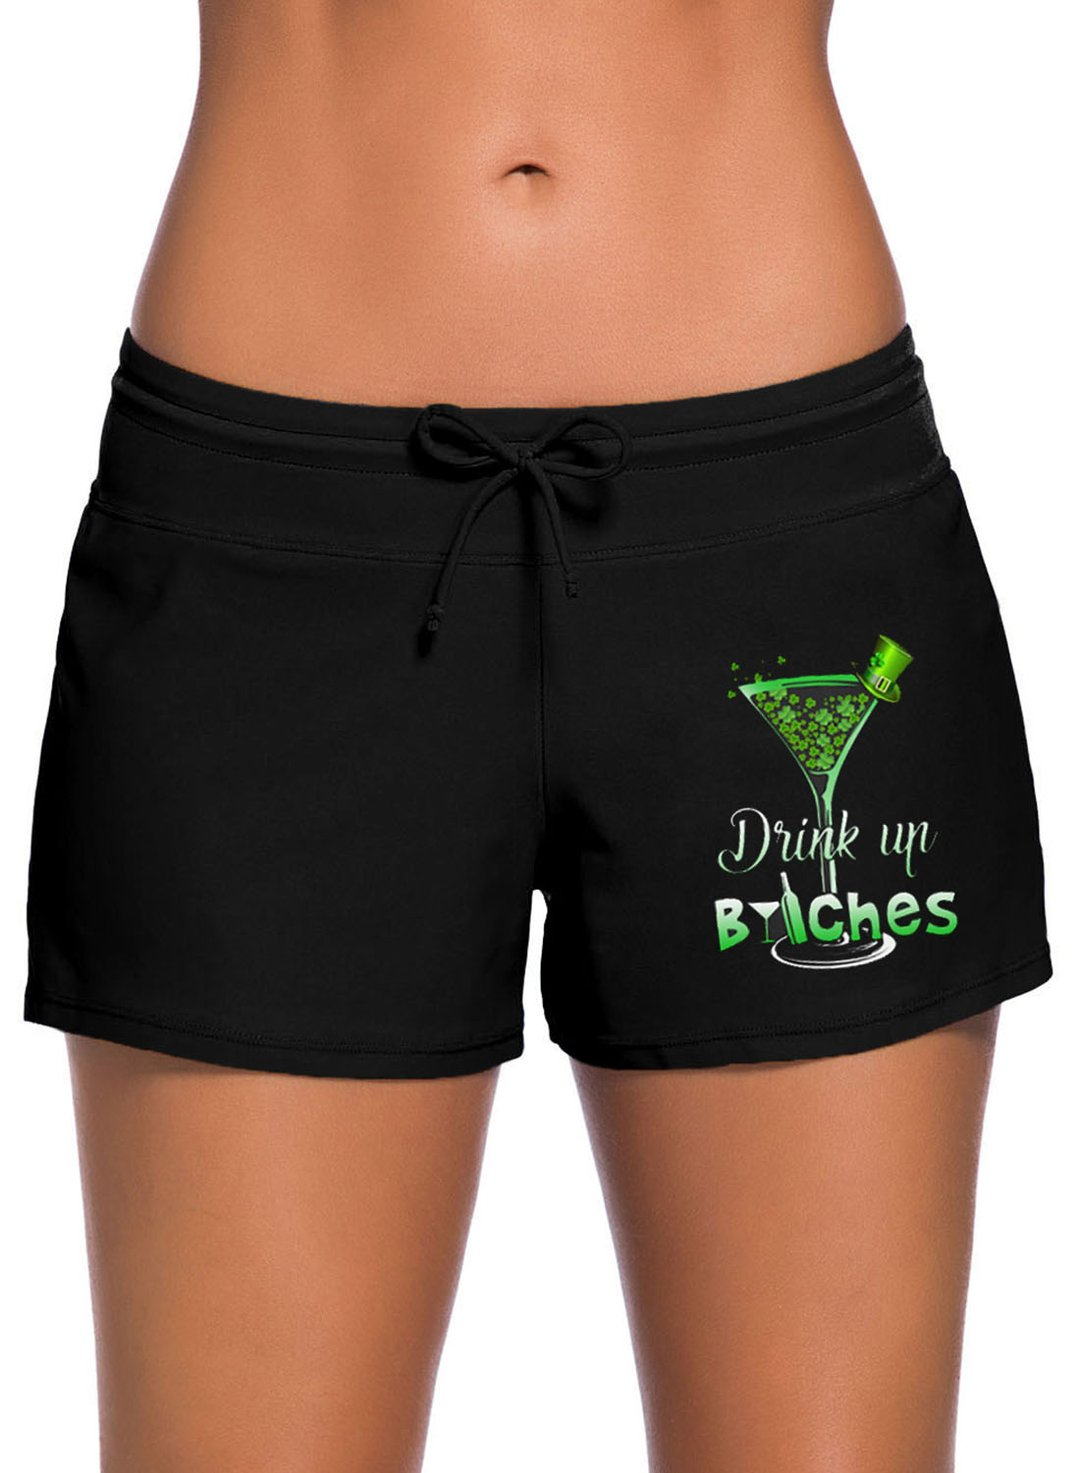 Black Women's Swim Shorts Mid Waist Letter Festival Knot Drawstring Swim Shorts LC472065-2